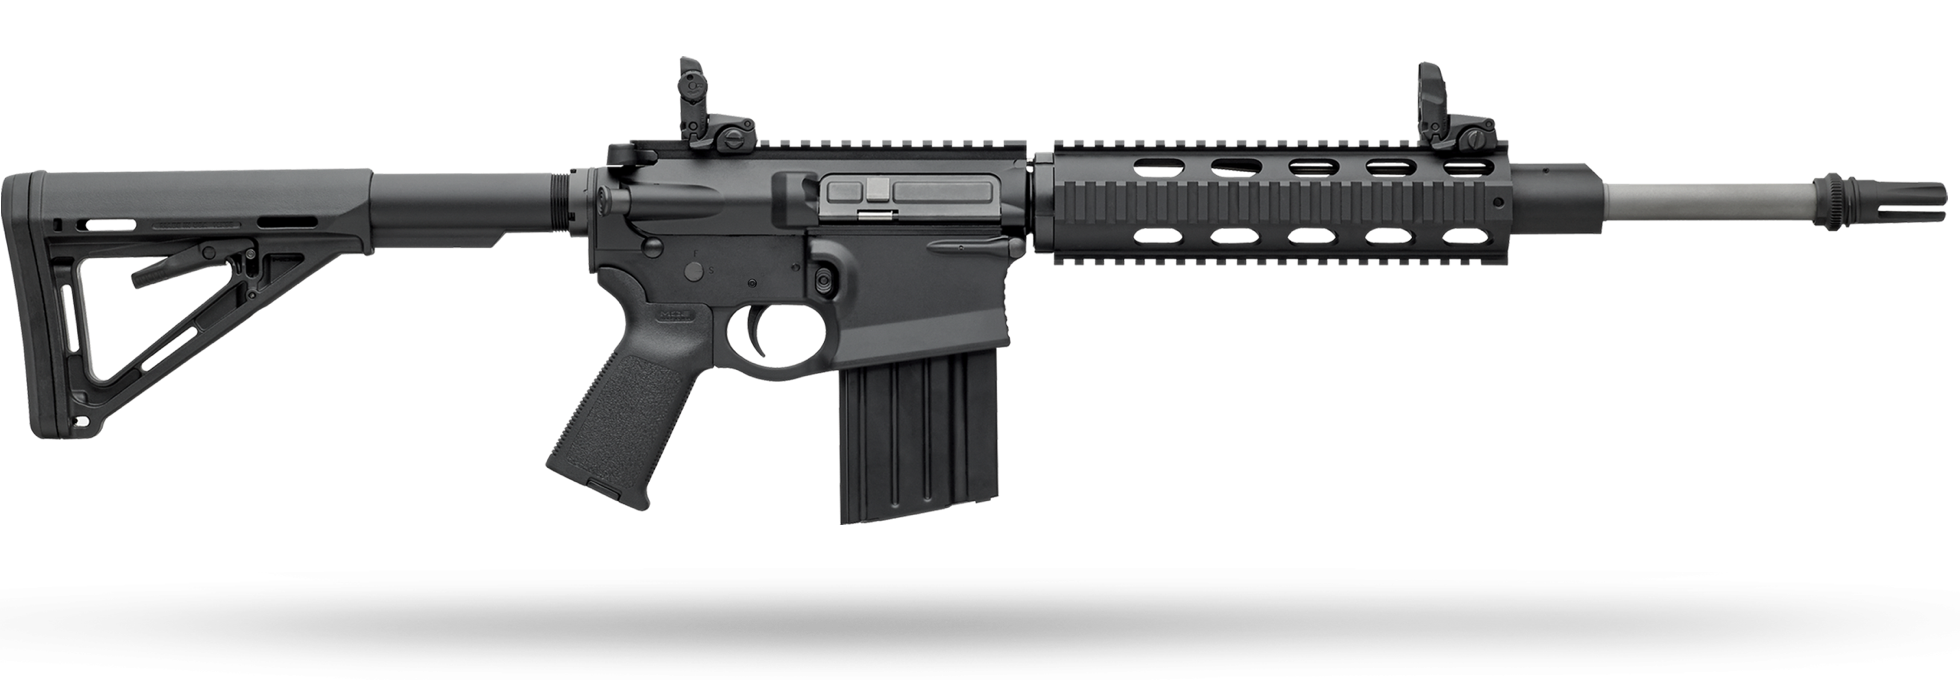 Introducing the DPMS GII .308 | GunSite South Africa M14 Tactical Sniper Rifle